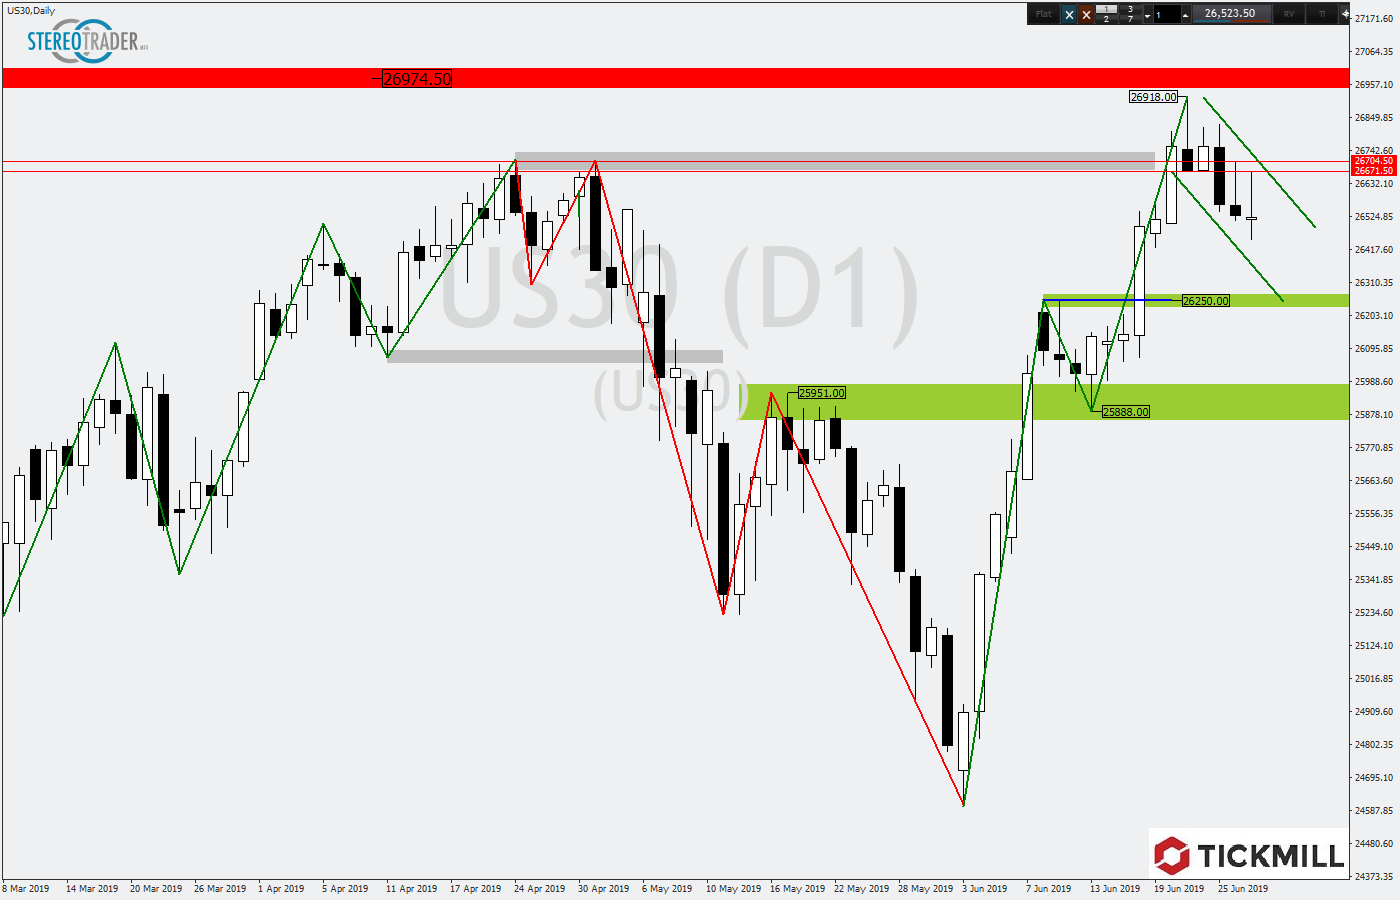 Tickmill-Analyse: DOW30 mit Bullenflagge